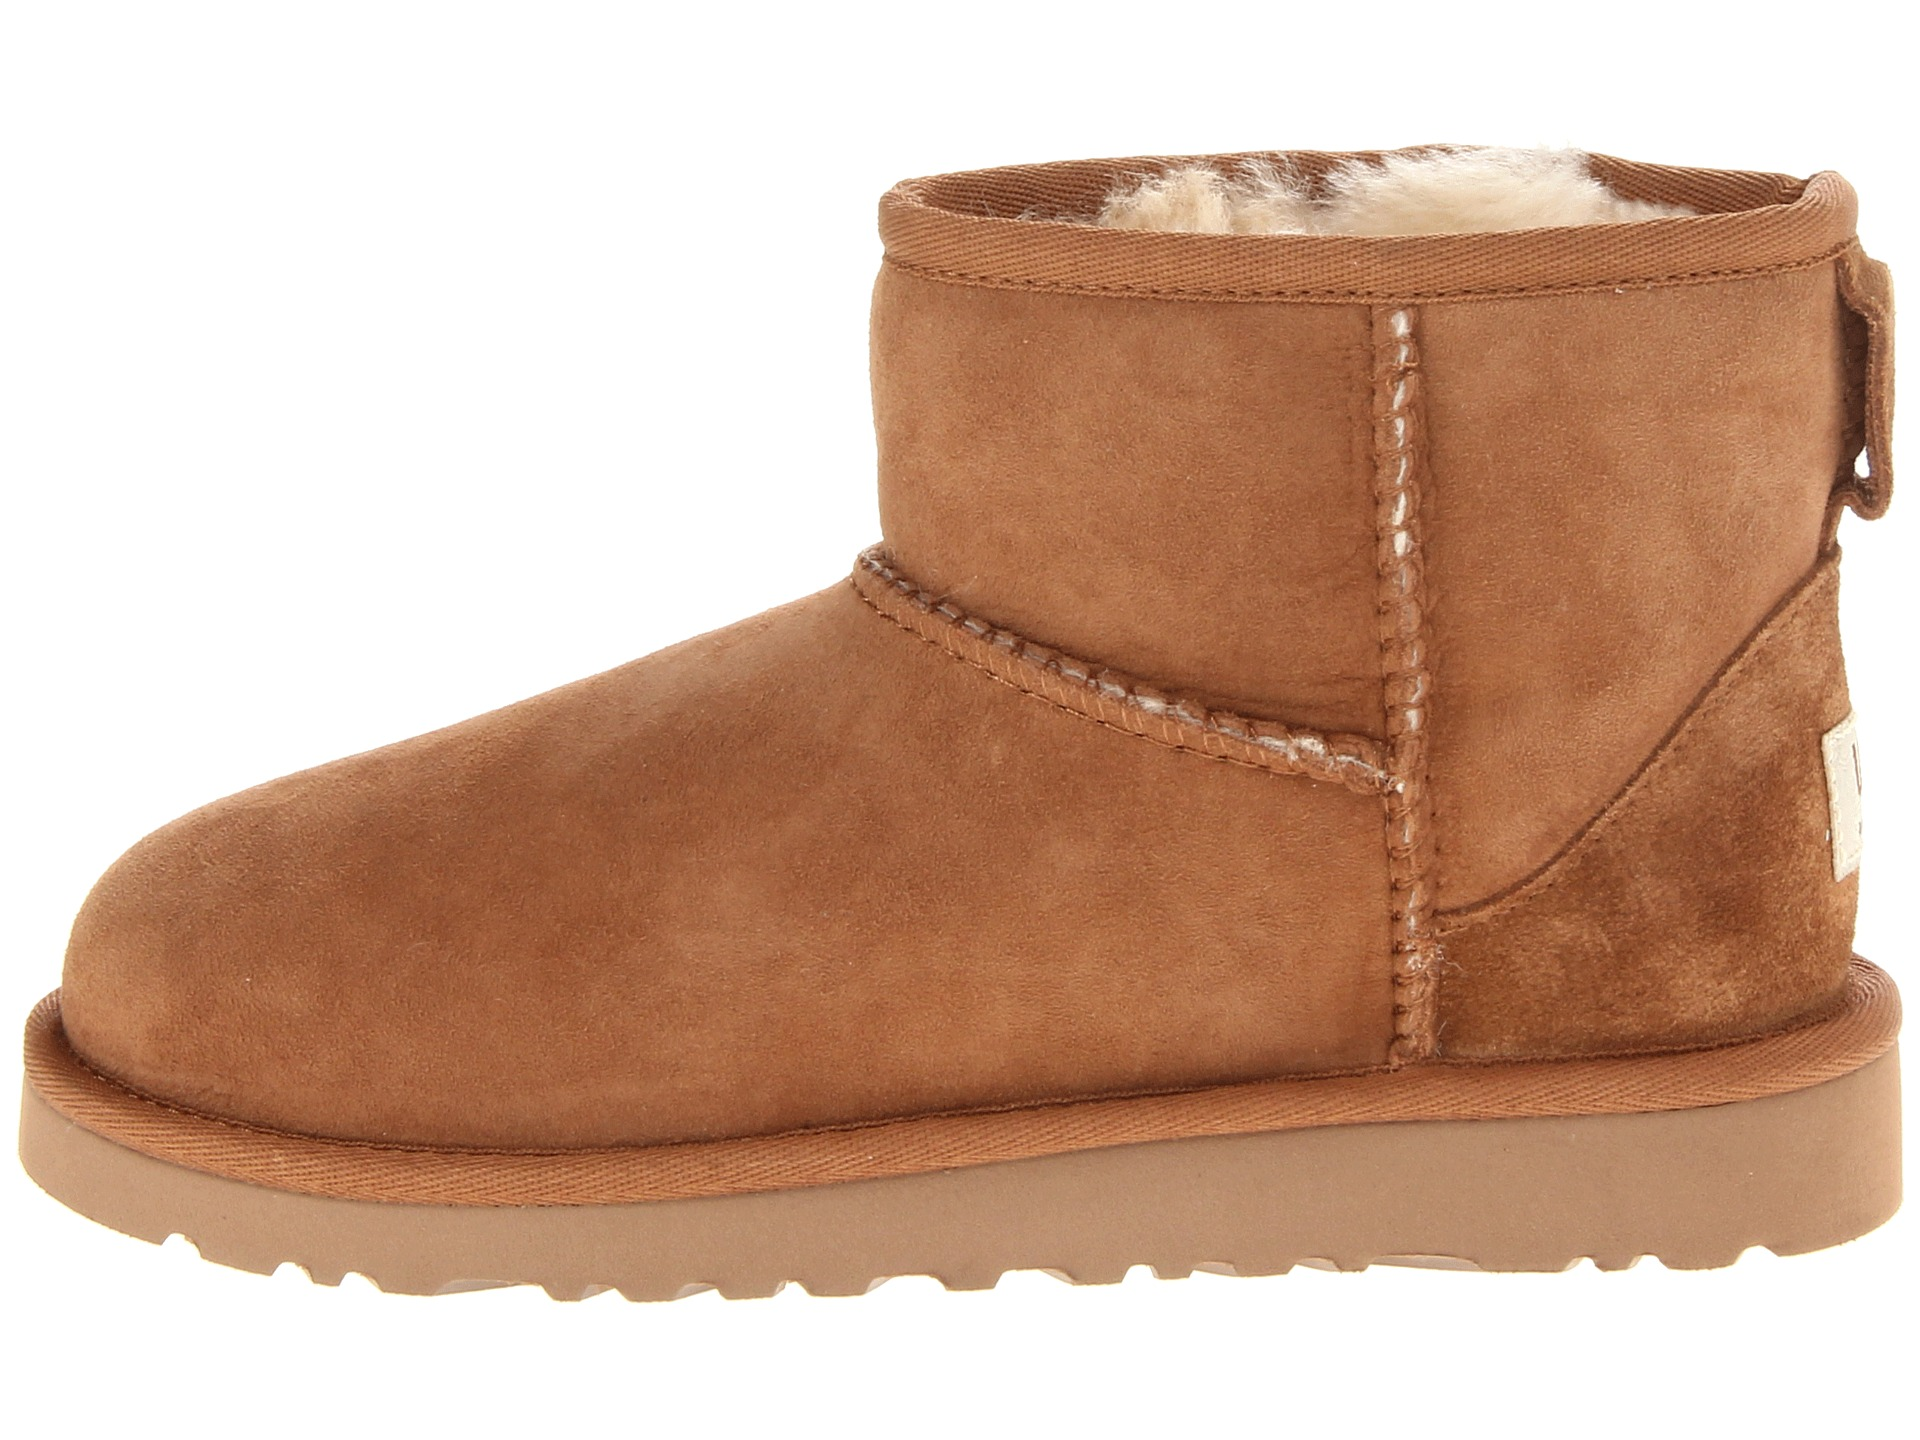 UGG: Selected For You